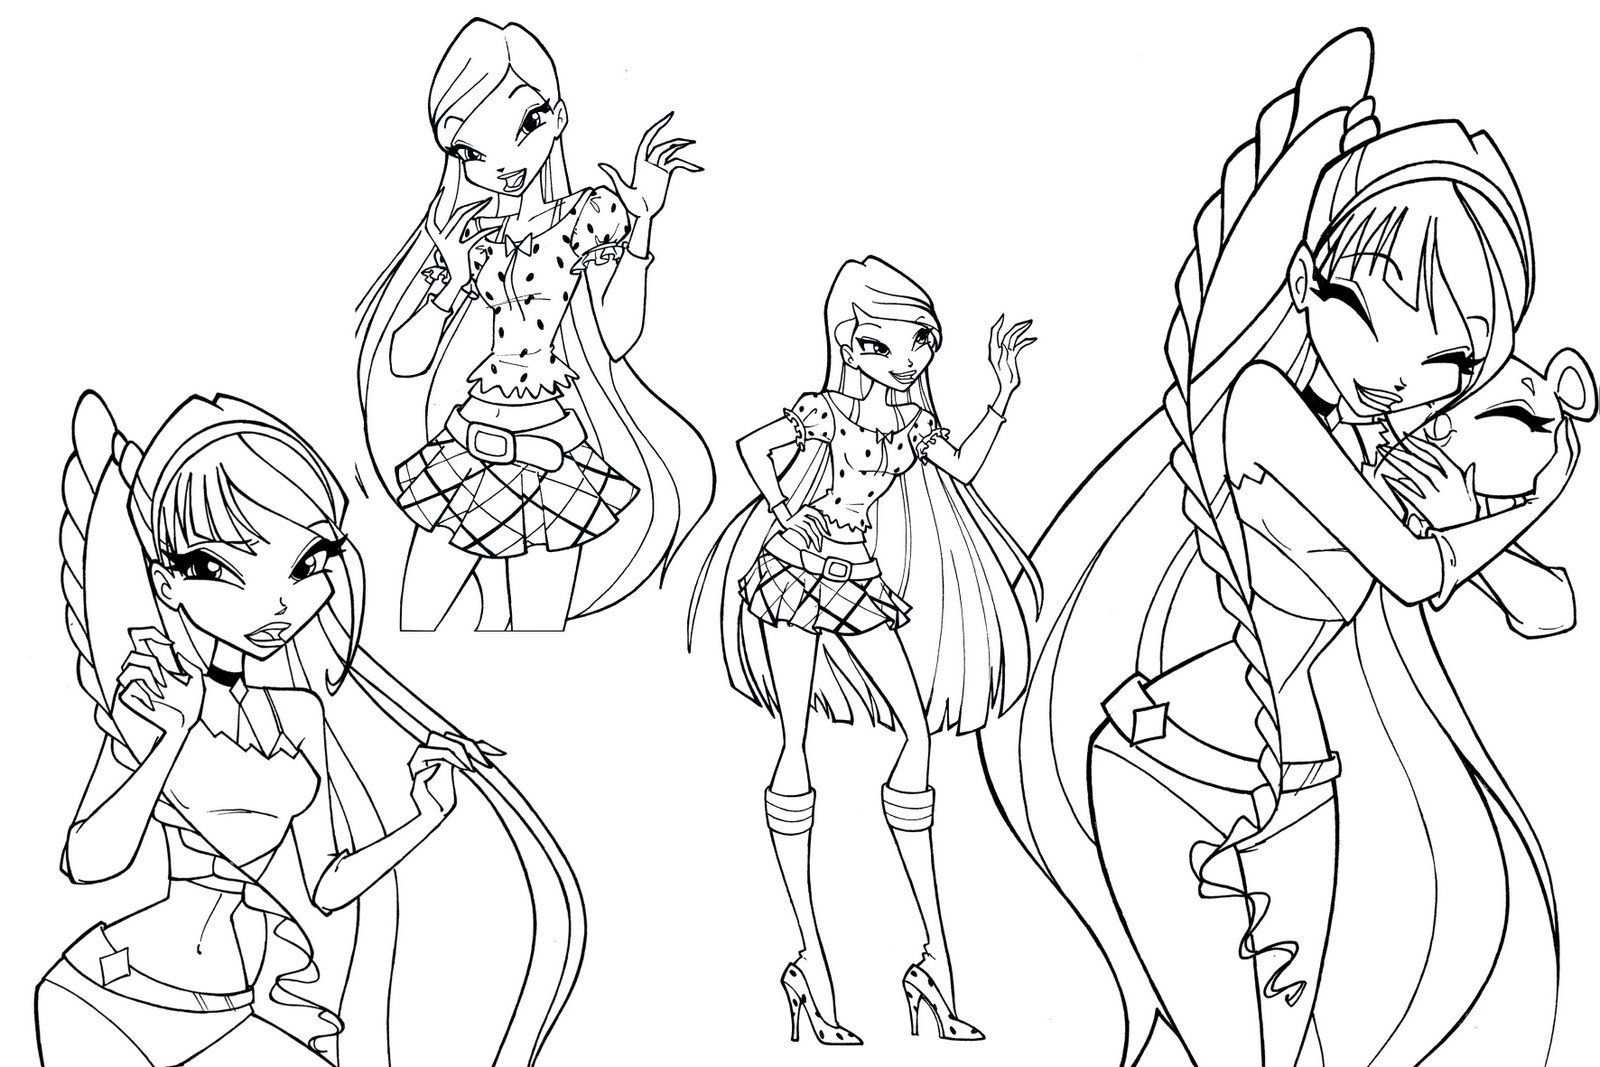 Winx Club Cartoon Coloring Pages Colorful Drawings Winx Club